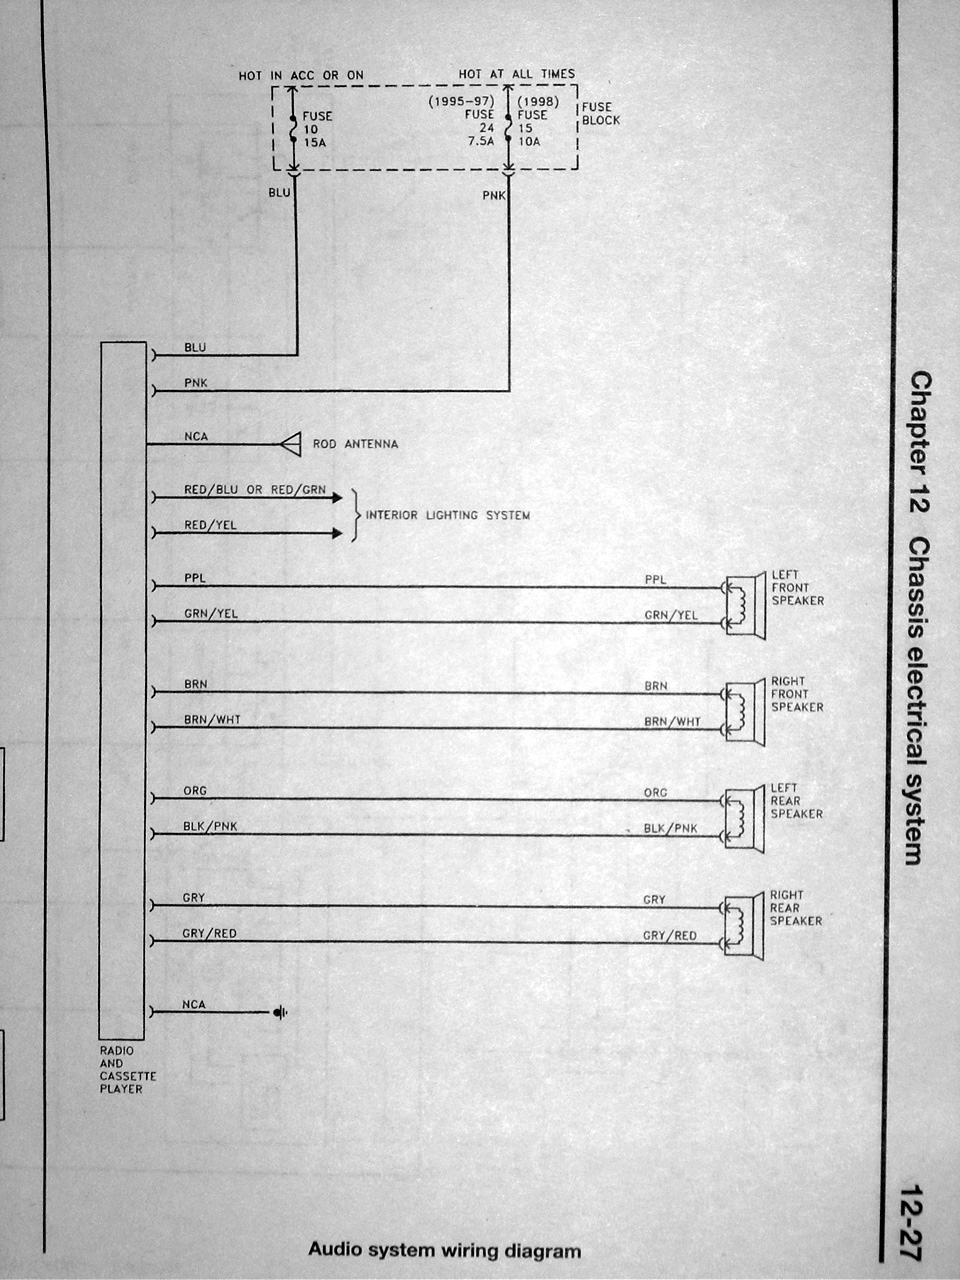 DSC01849 wiring diagram thread *useful info* nissan forum 2003 nissan frontier wiring diagram at reclaimingppi.co